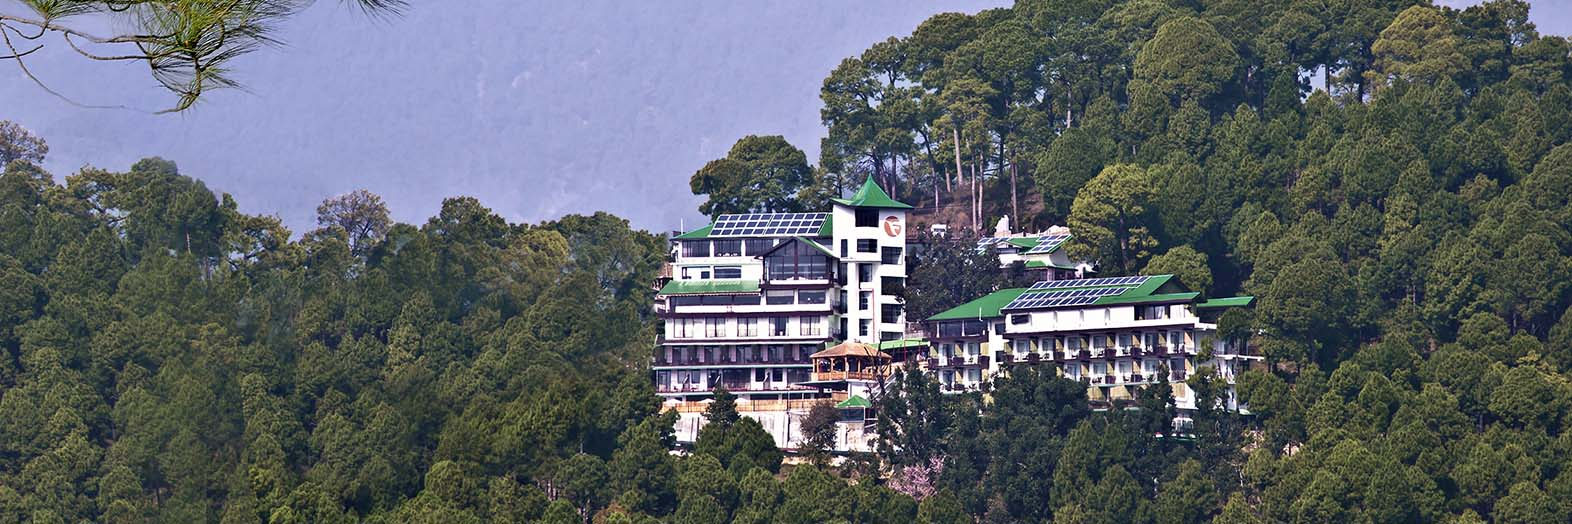 Mcleod ganj fortune park moksha hotel luxury hotel mcleod - Hotels in dharamshala with swimming pool ...